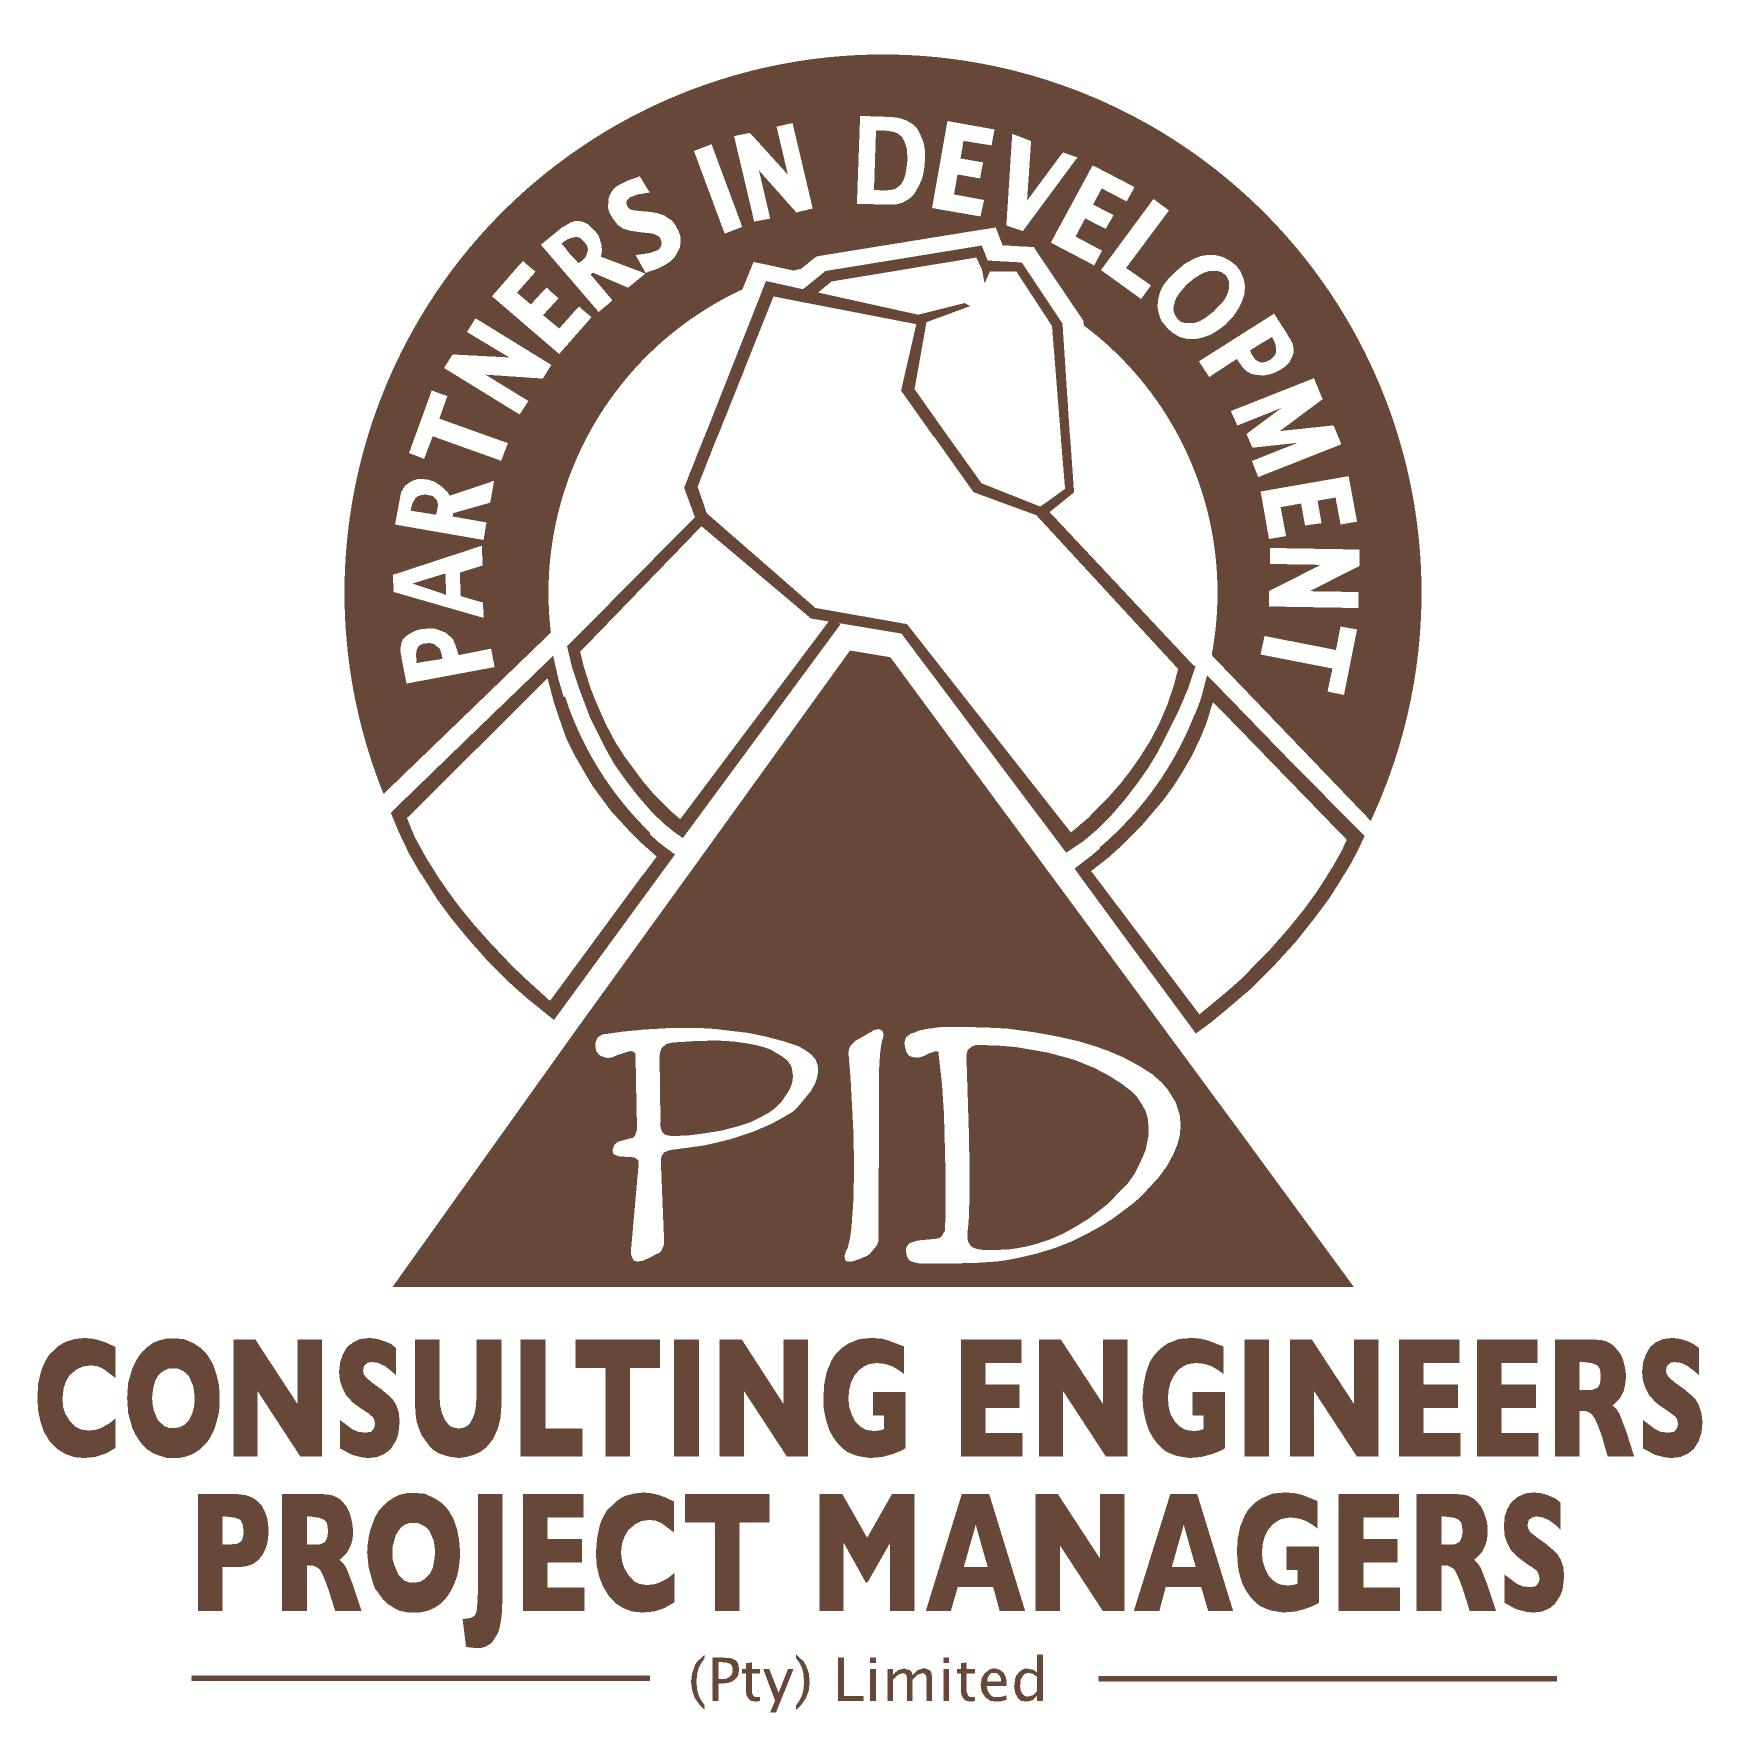 Partners in Development - Water, Sanitation, Agricultural & Civil Engineering Services